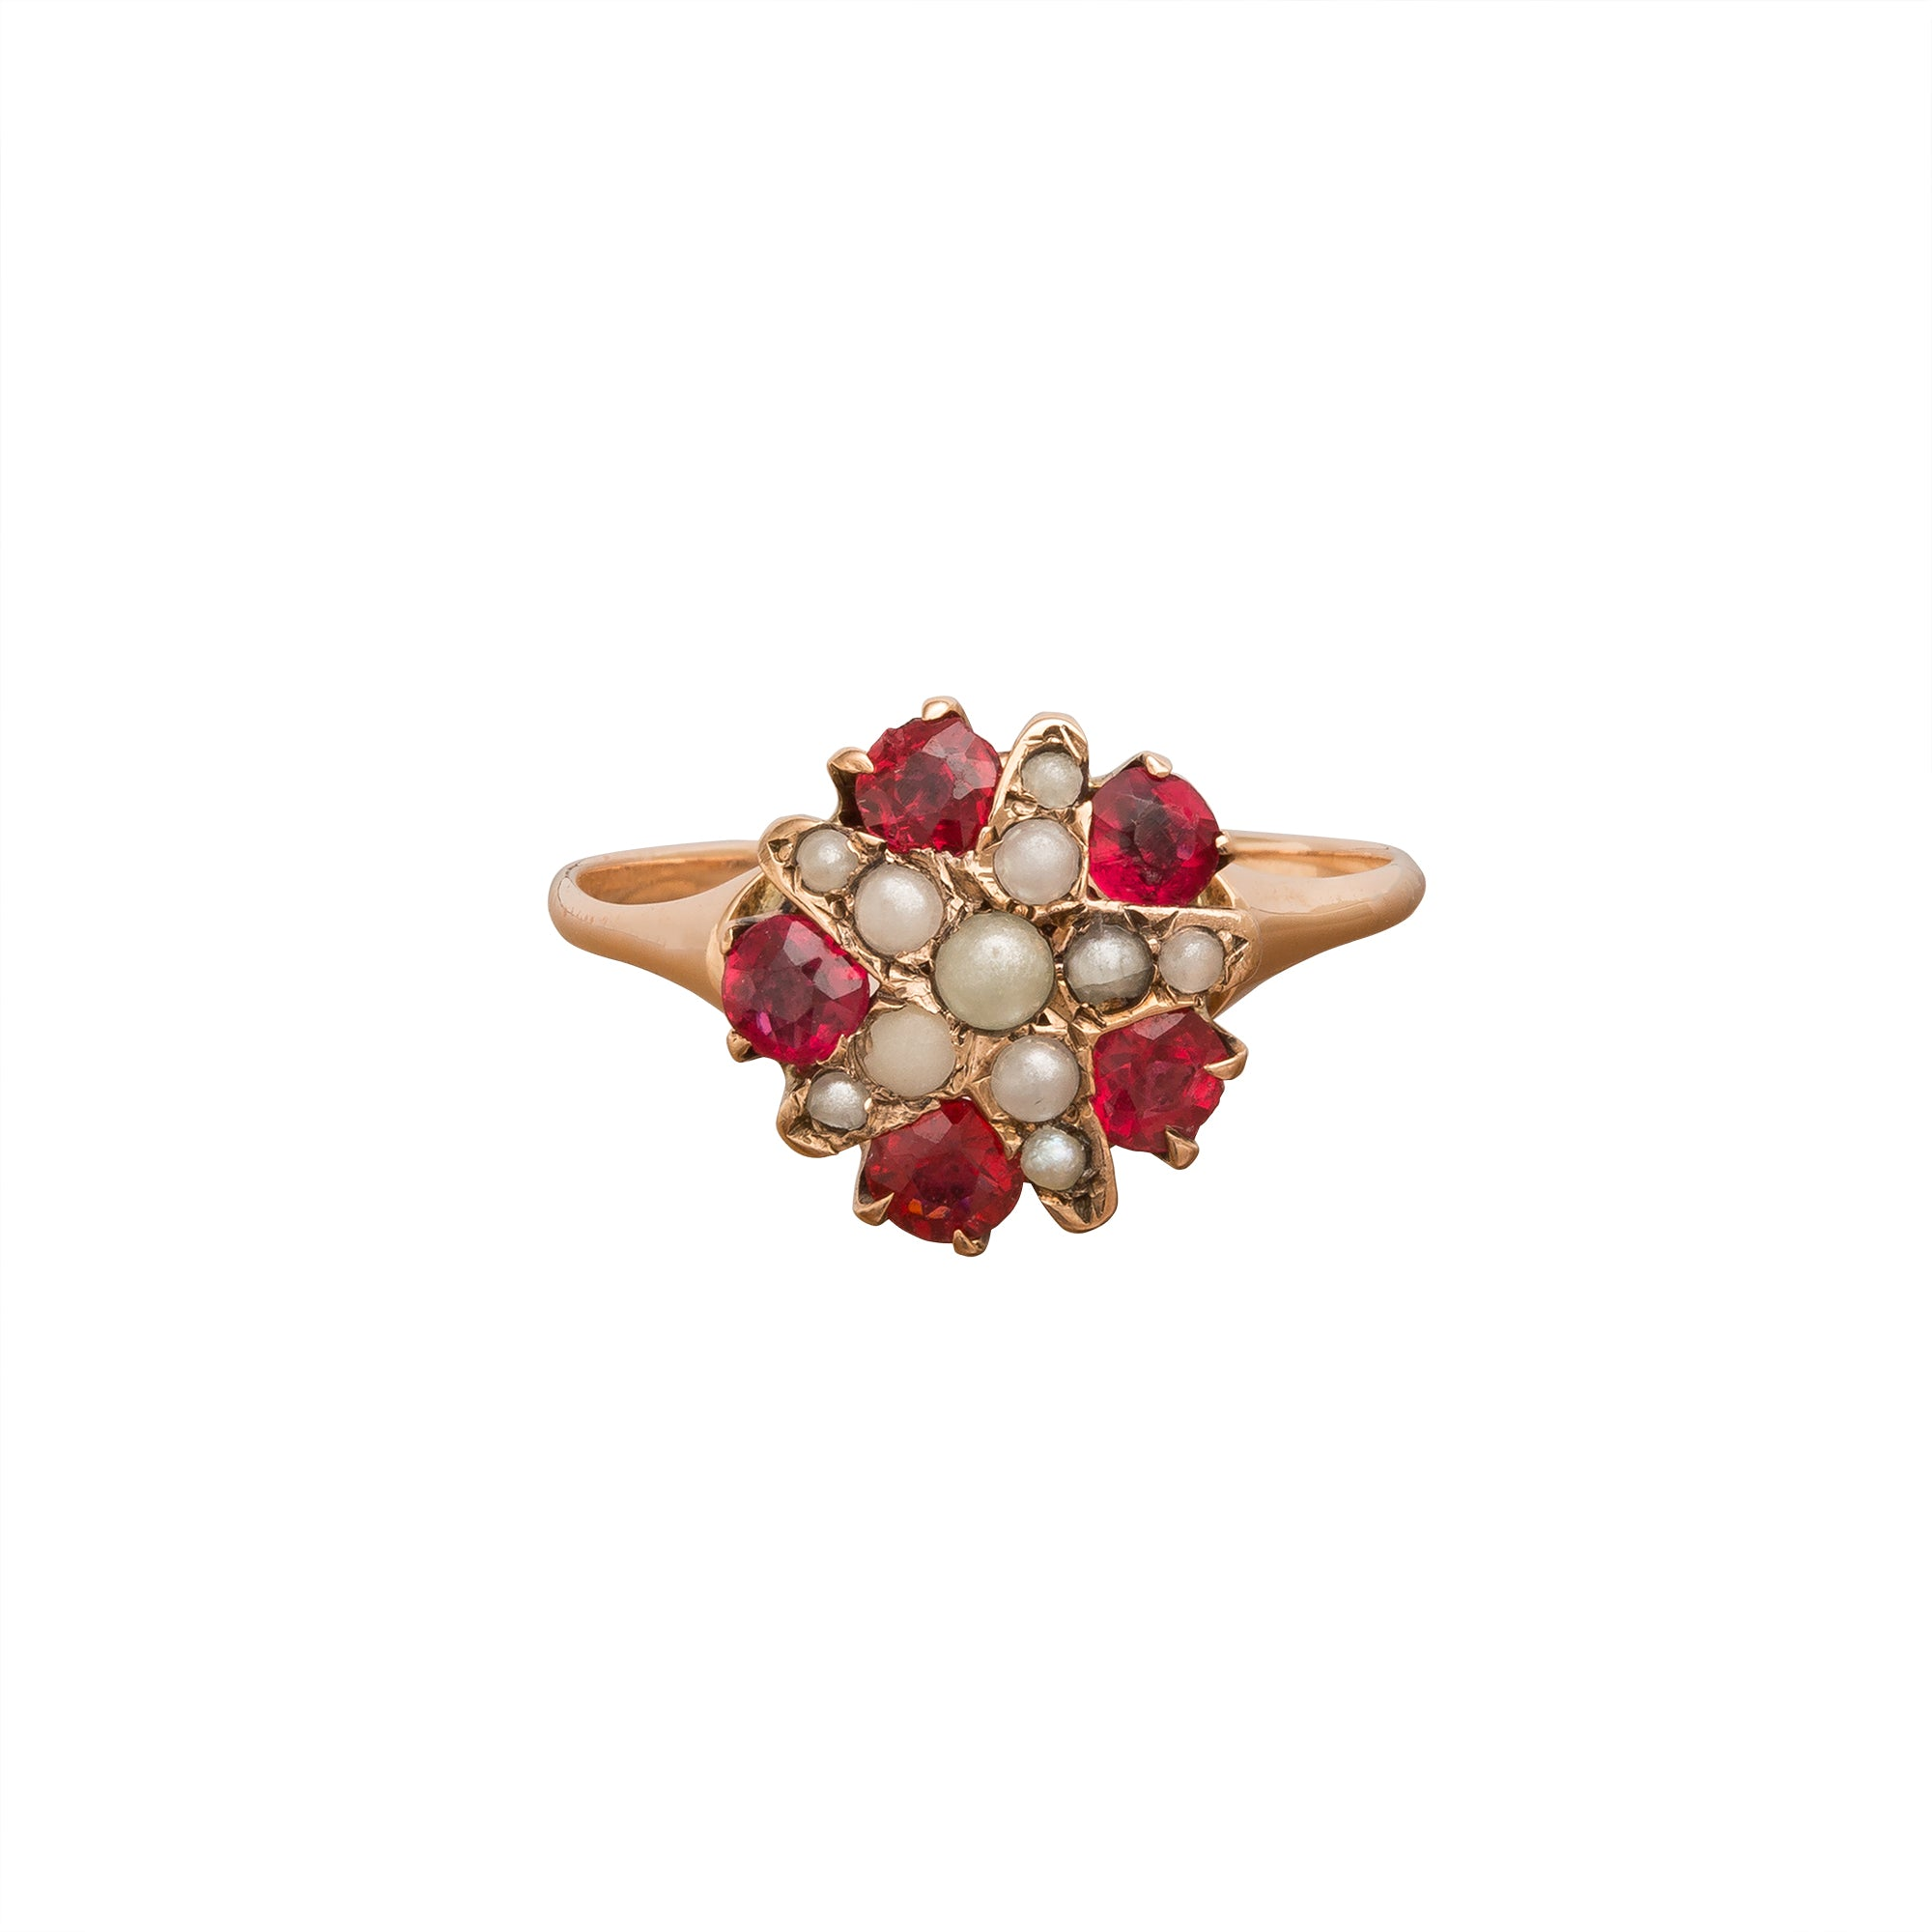 Pearl & Garnet Star Ring by Vintage Jewelry for Broken English Jewelry